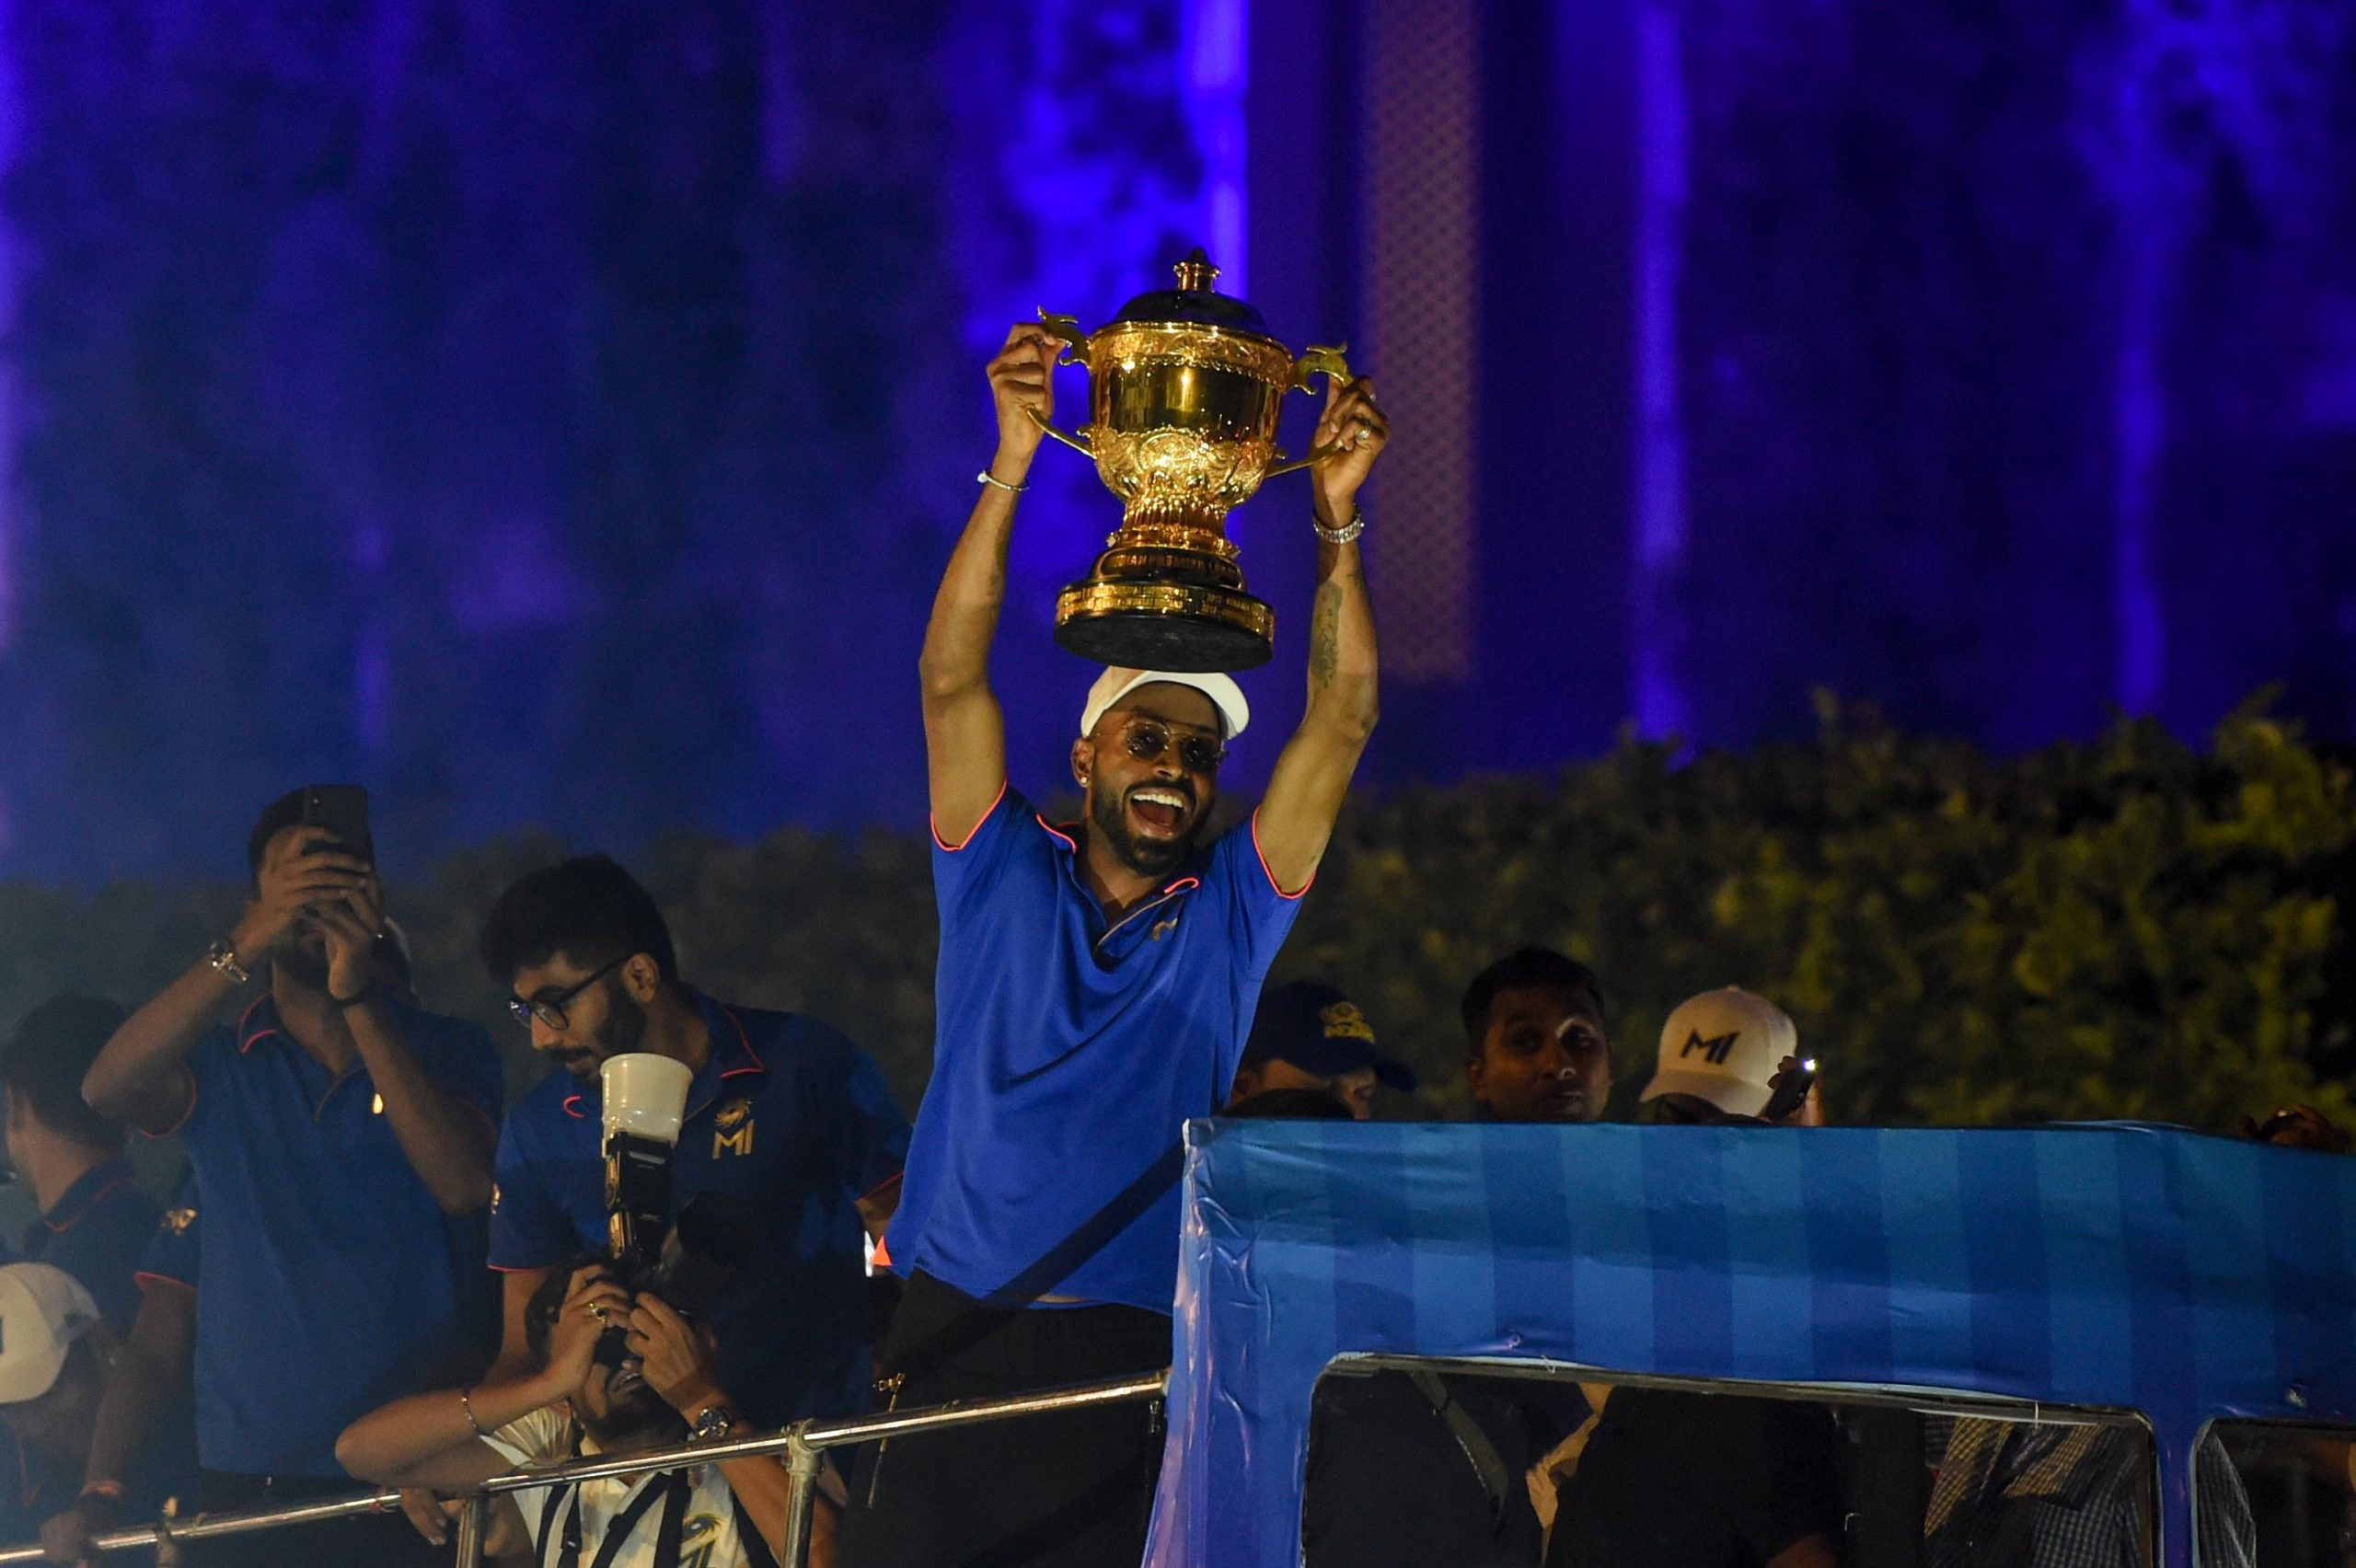 Mumbai Indians cricket player Hardik Pandya (C) holds the winning cup as the team travels in a open bus during a celebration procession after arriving in Mumbai on May 13, 2019. - Mumbai Indians team won the 2019 Indian Premier League (IPL) Twenty20 cricket tournament title. (Photo by PUNIT PARANJPE / AFP)        (Photo credit should read PUNIT PARANJPE/AFP via Getty Images)